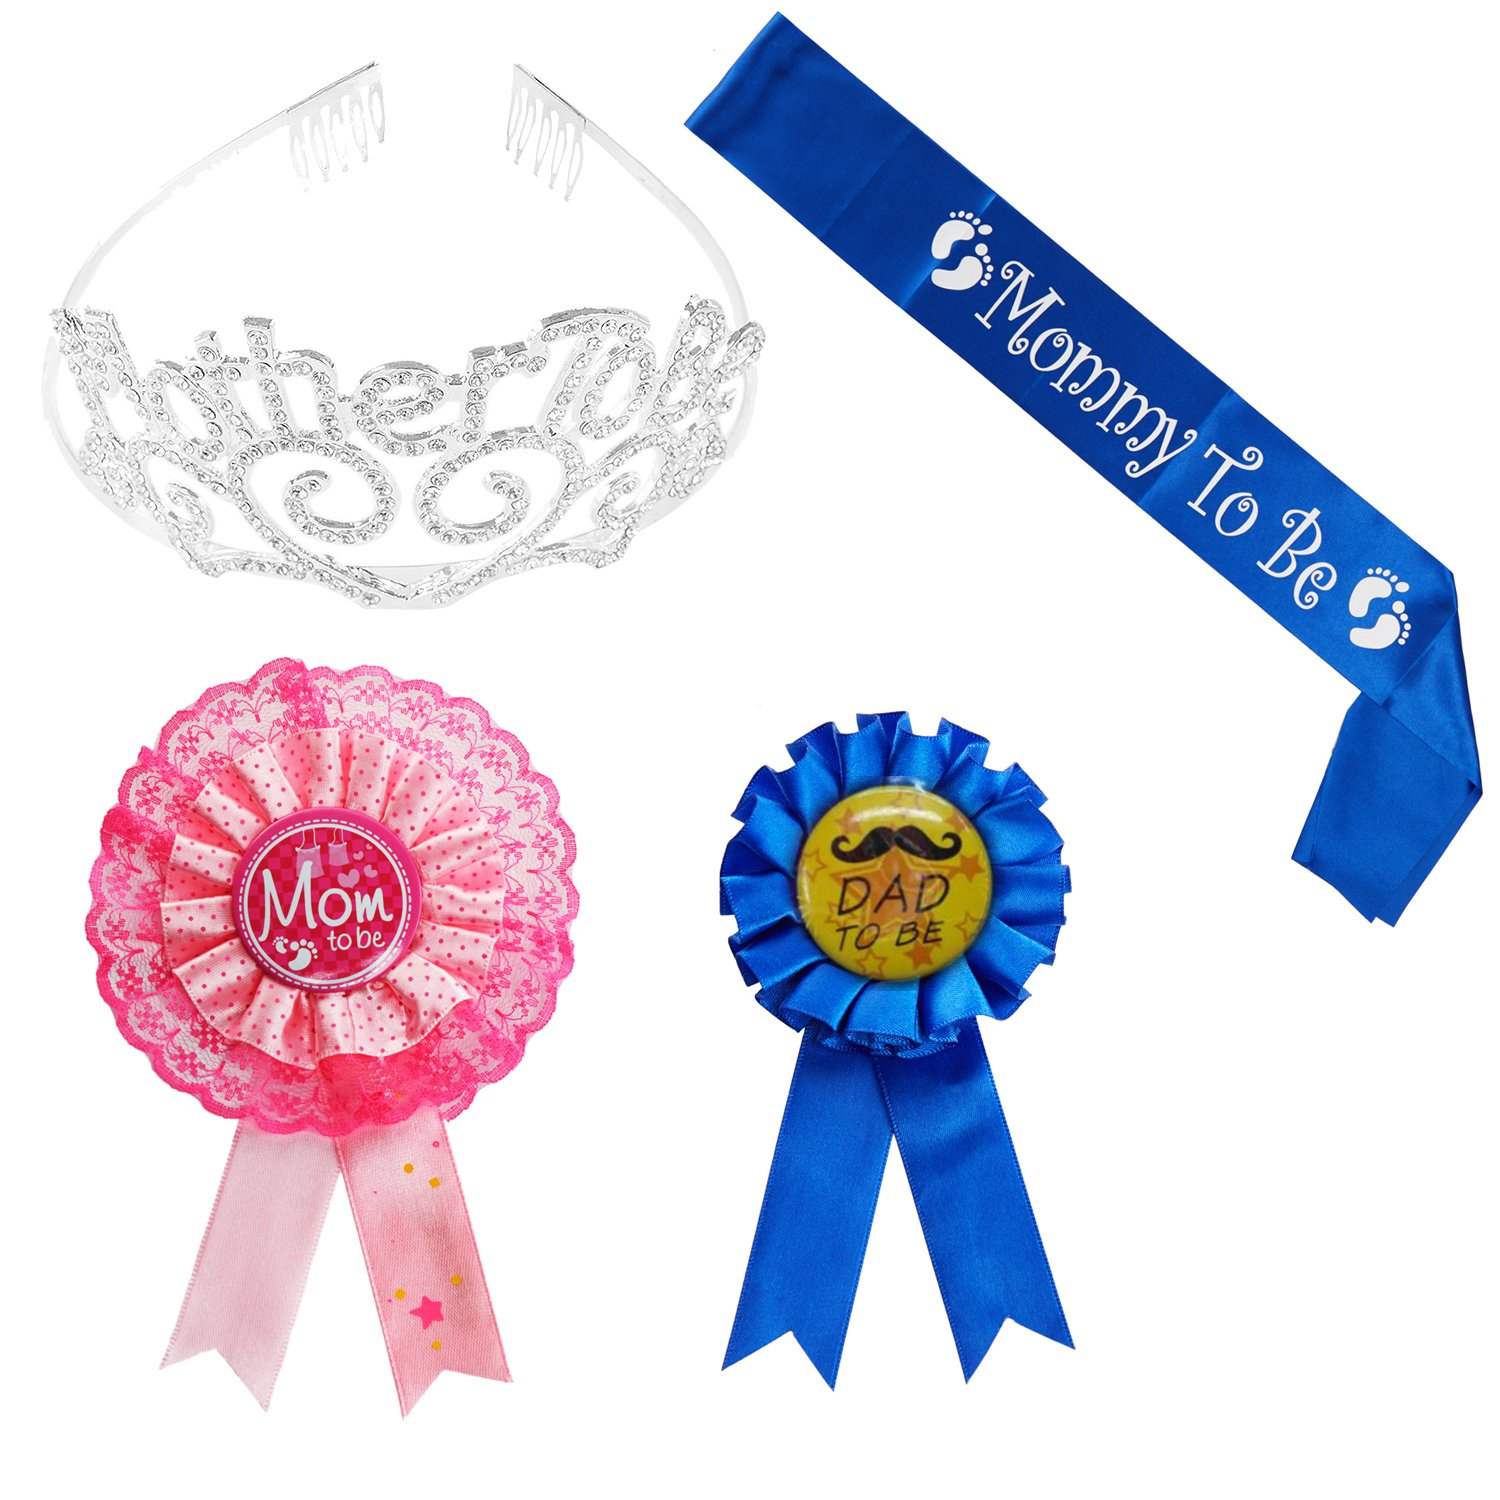 Mother To Be Tiara Hearts Crown + Mom To Be Sash + Mom To Be Pin + Dad To Be Pin - Baby Shower Party Favors Decorations Gift For Boy or Girl (Mother to be - Blue_2, OneSize)